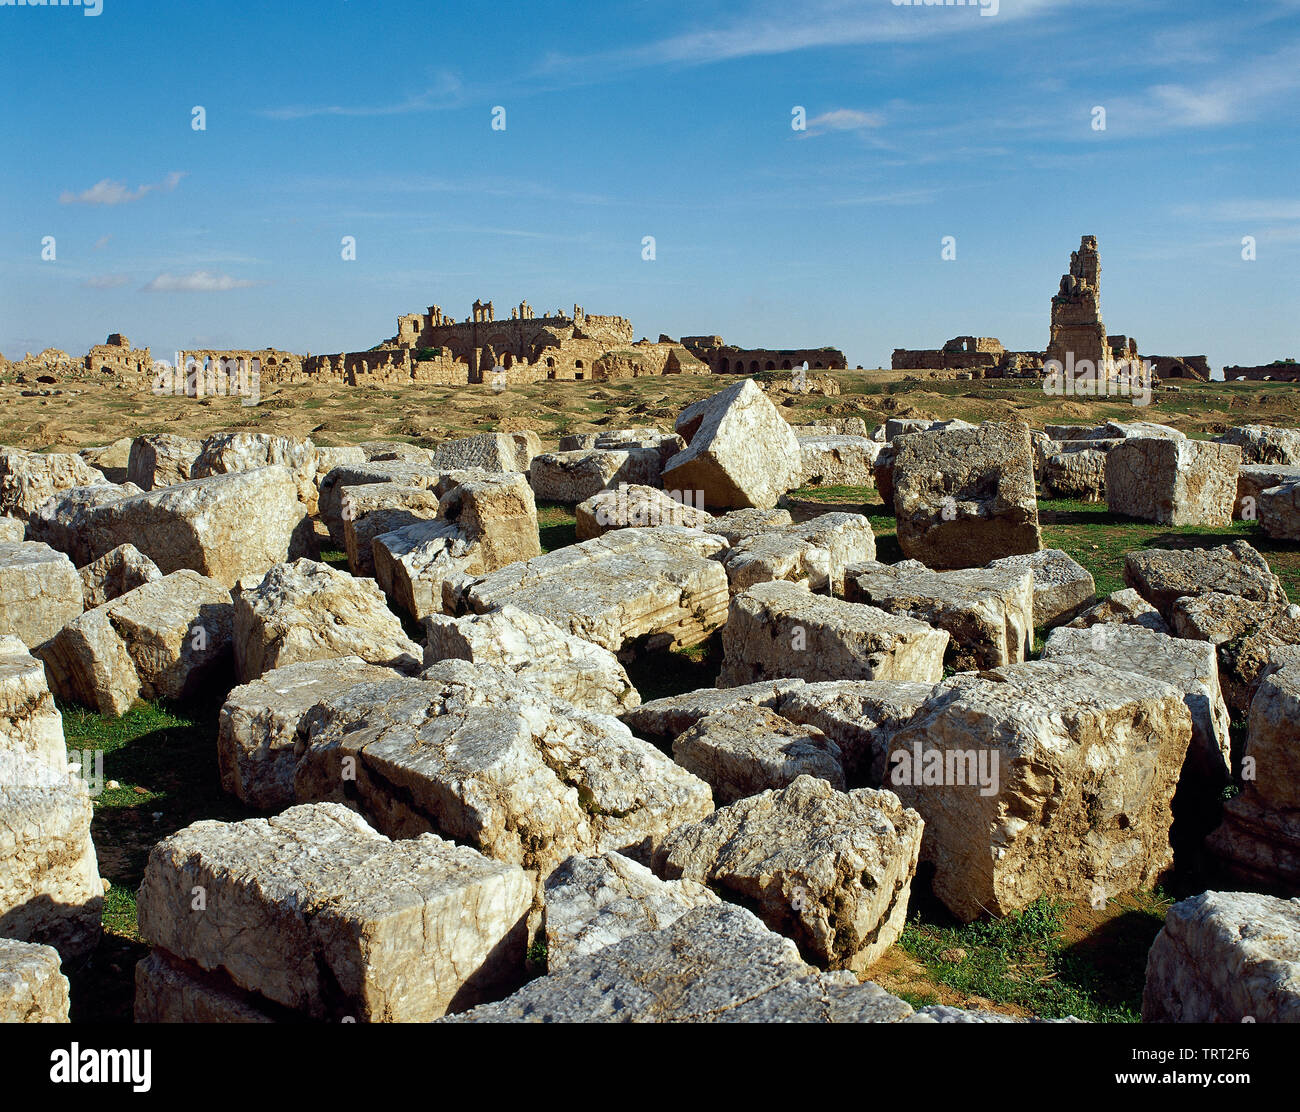 Syria. Resafa. Known in Roman times as Sergiopolis and briefly as Anastasiopolis. Archaeological site. Ruins of the Byzantine Khan, where the merchants of the caravans were staying and trading. Photo taken before Syrian Civil War. - Stock Image